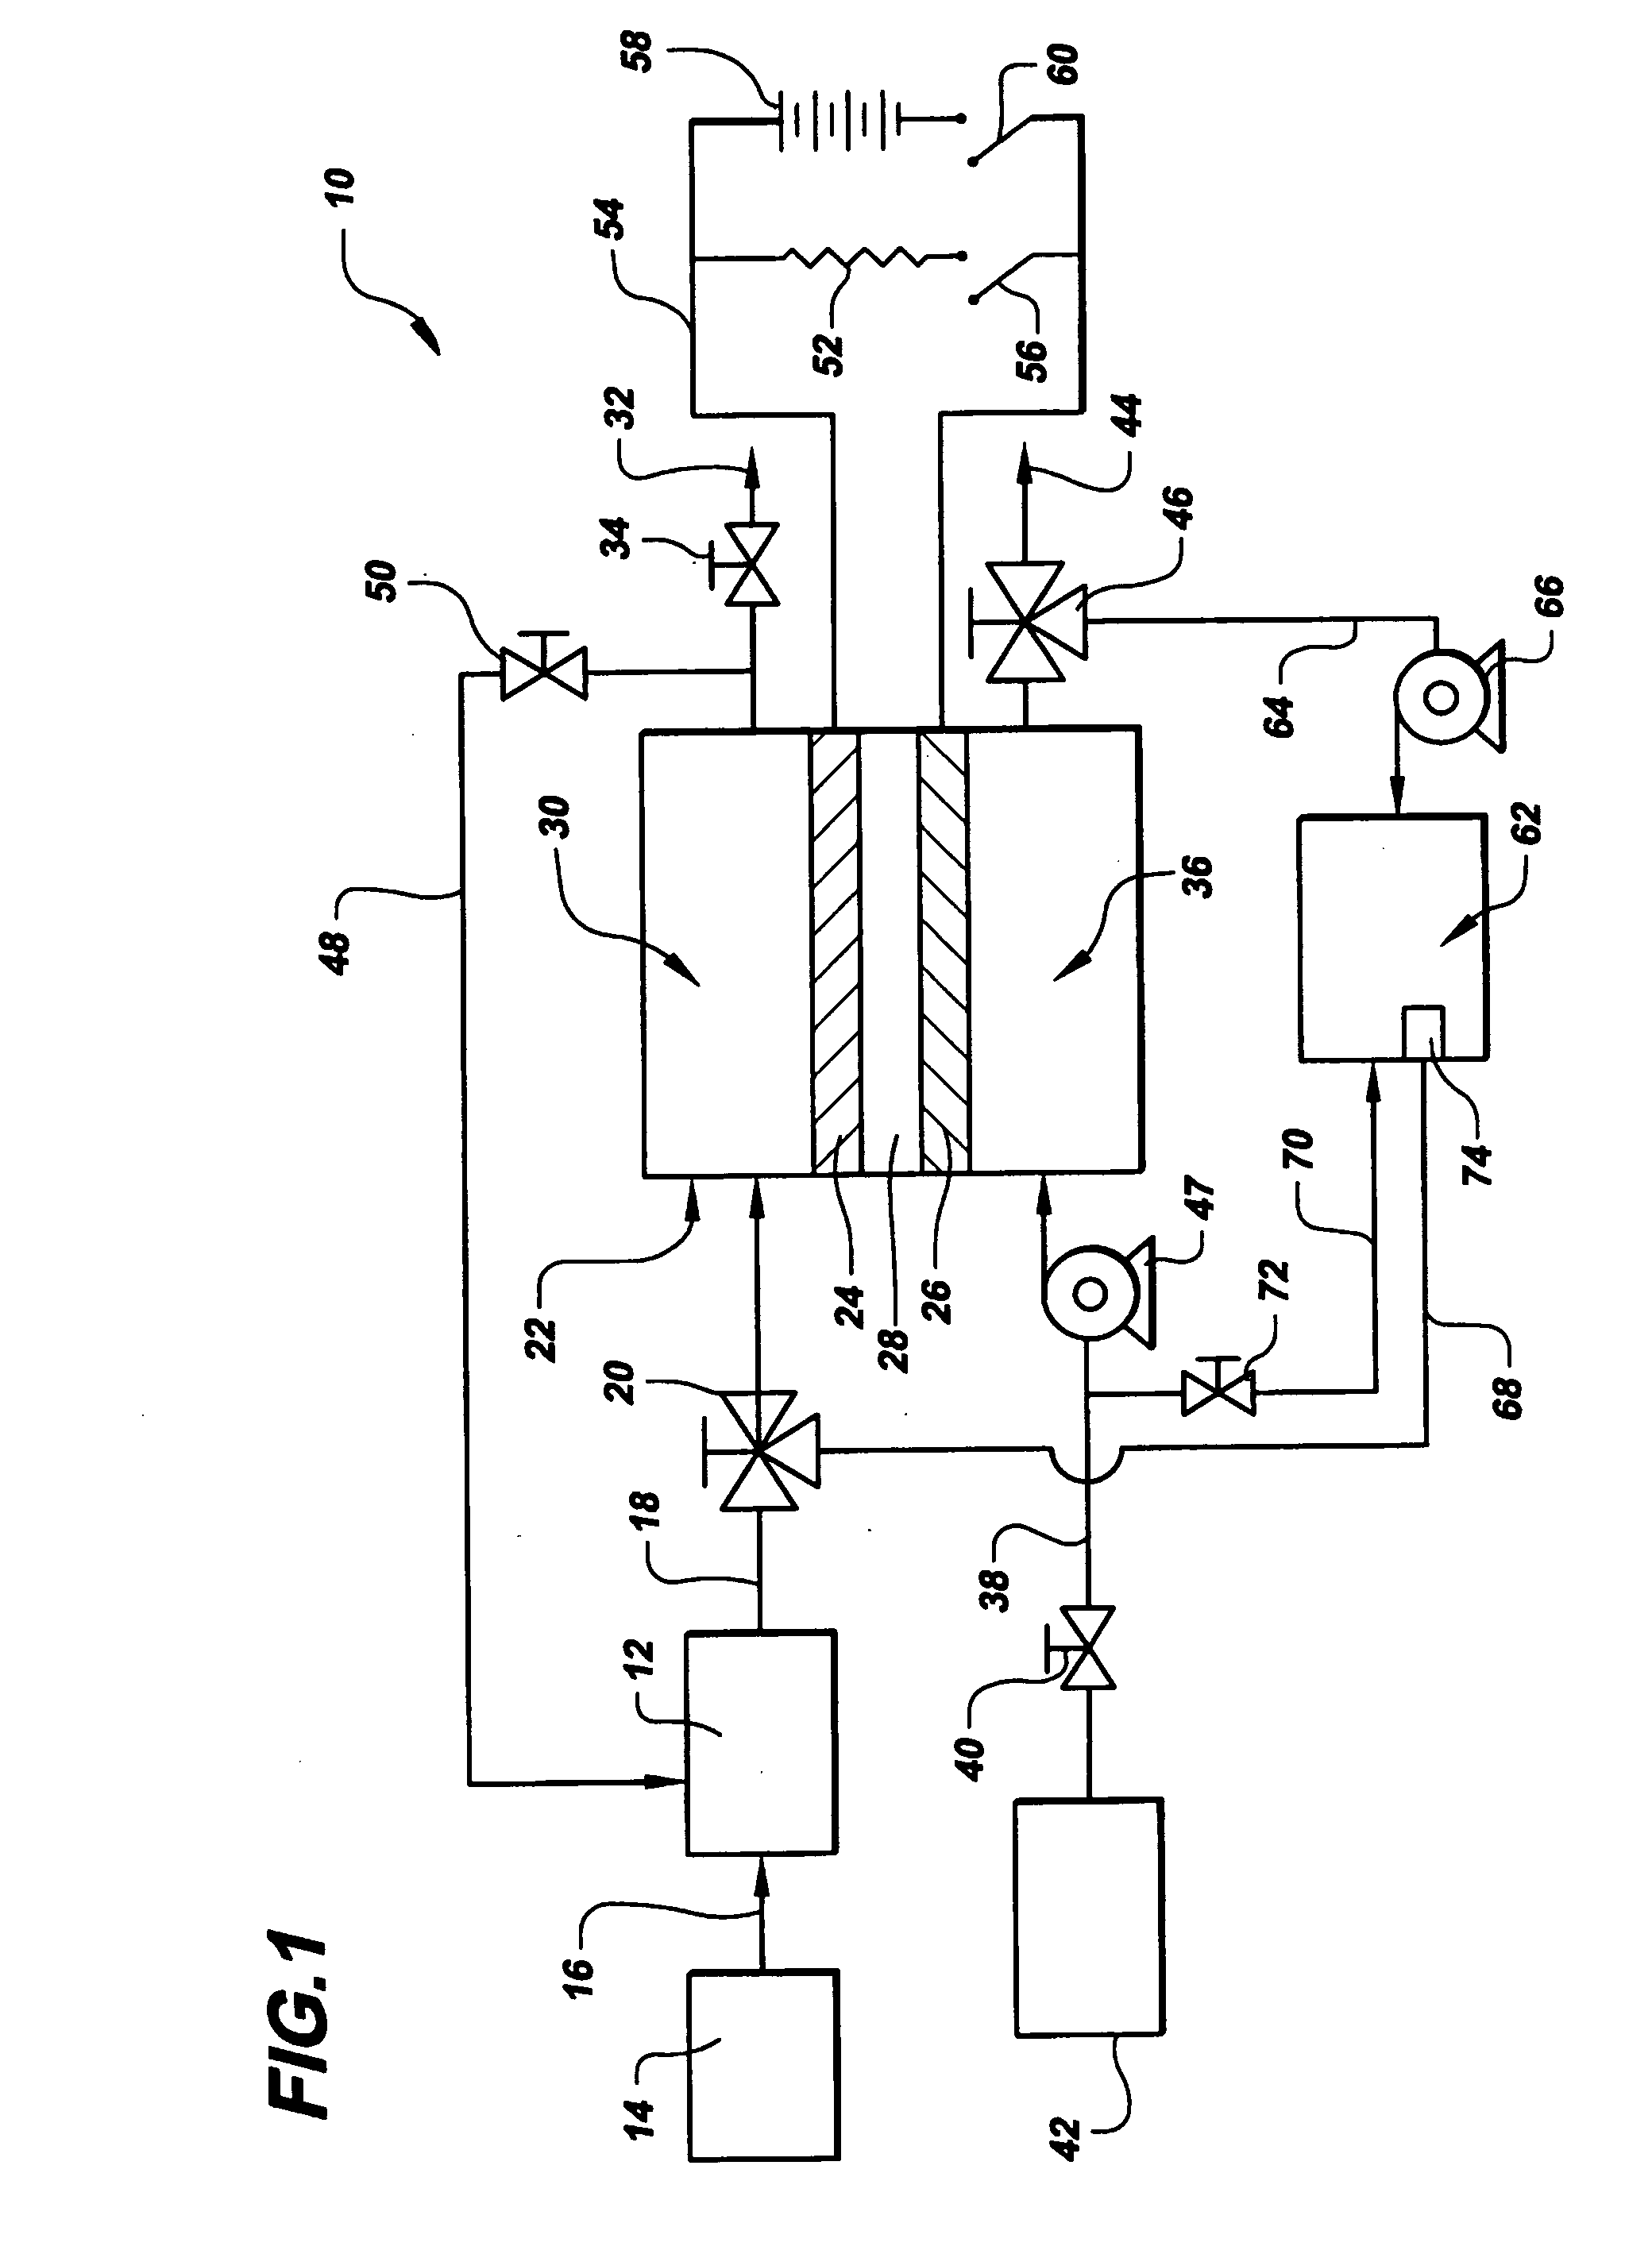 Mgf Starter Motor Wiring Diagram | Wiring Diagram Database on harley solenoid diagram, harley primary drive diagram, harley wiring schematics, harley starter motor, harley throttle body diagram, harley relay diagram, harley charging system diagram, harley ignition diagram, ignition starter switch diagram, harley transmission diagram, harley jackshaft diagram, harley starter drive diagram, harley electrical diagram, harley starter relay, harley starter solenoid, harley starter exploded view of, harley starter removal, harley starter cover, harley wiring diagrams pdf, harley starter clutch,